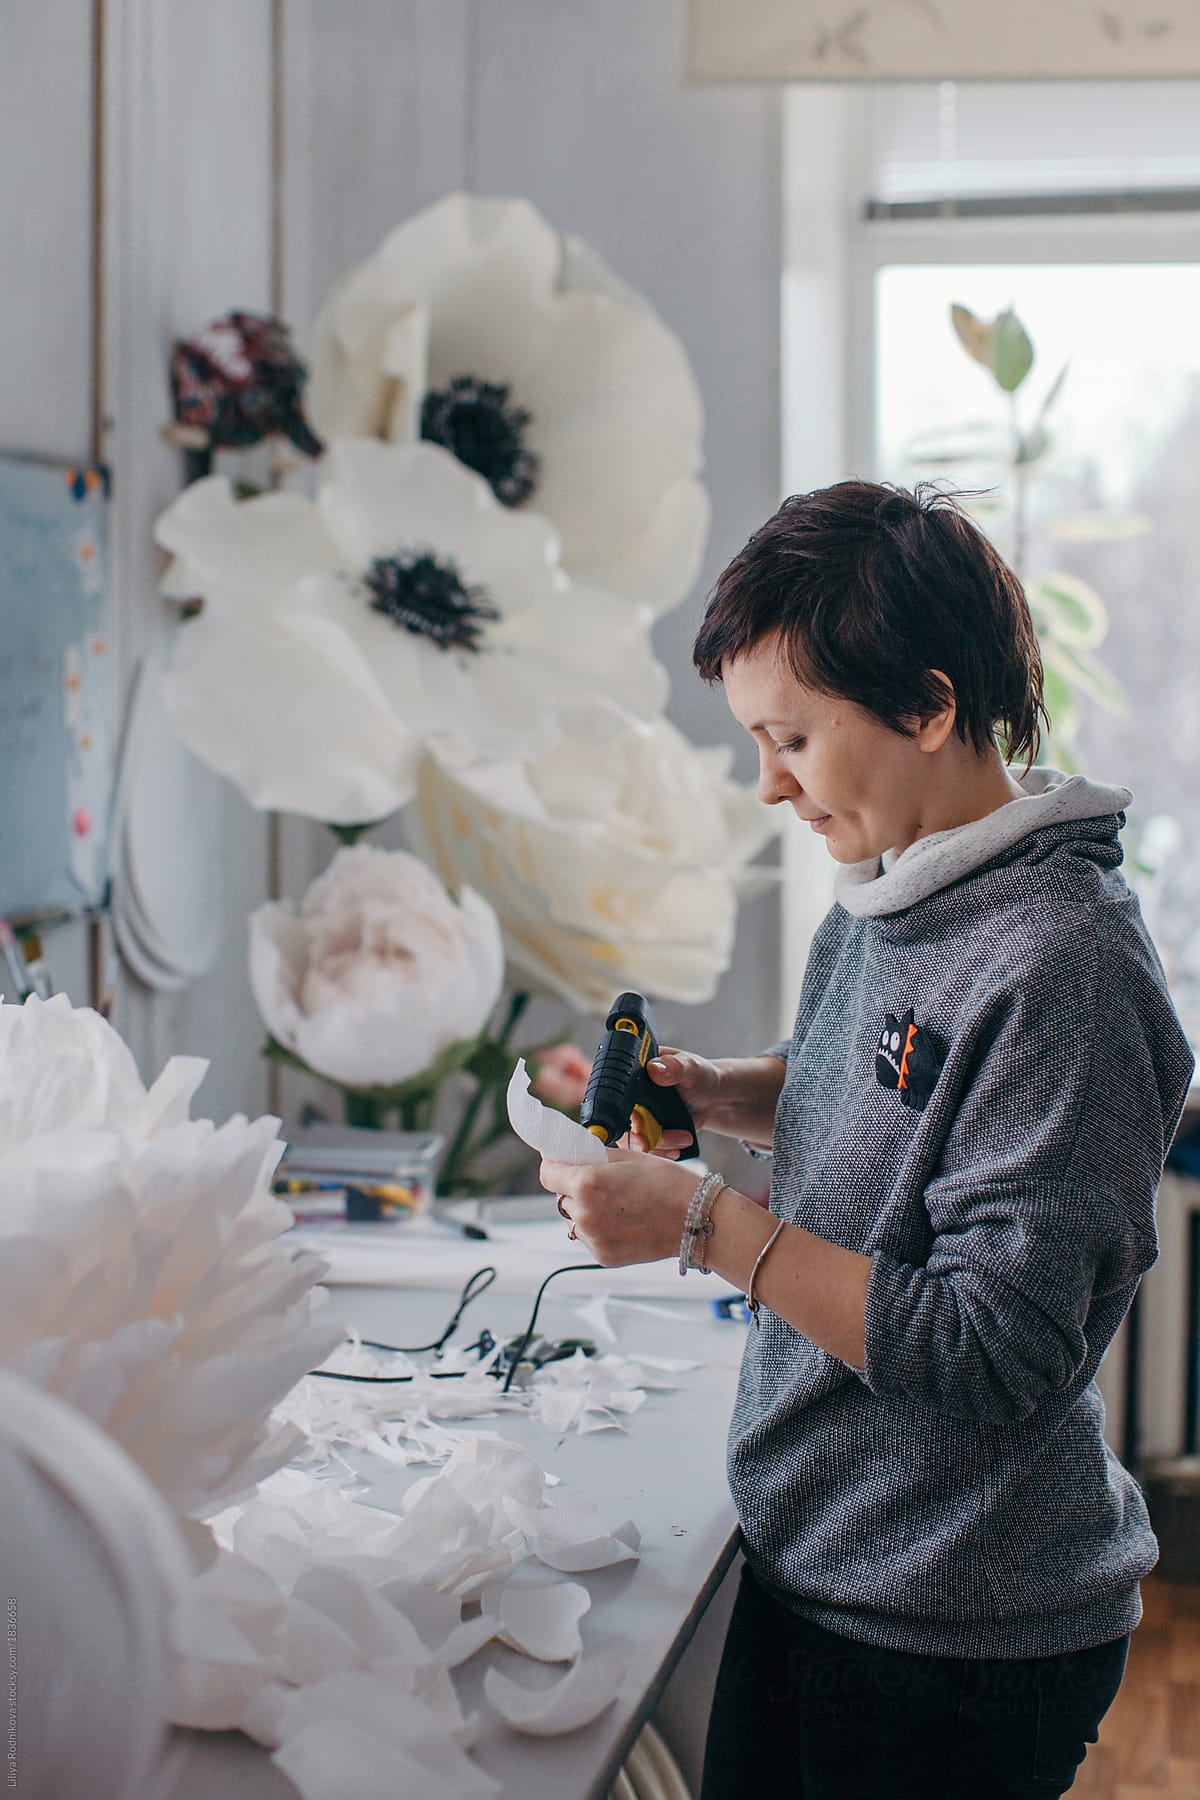 Artist Creating Big Paper Flowers In Her Workshop By Liliya